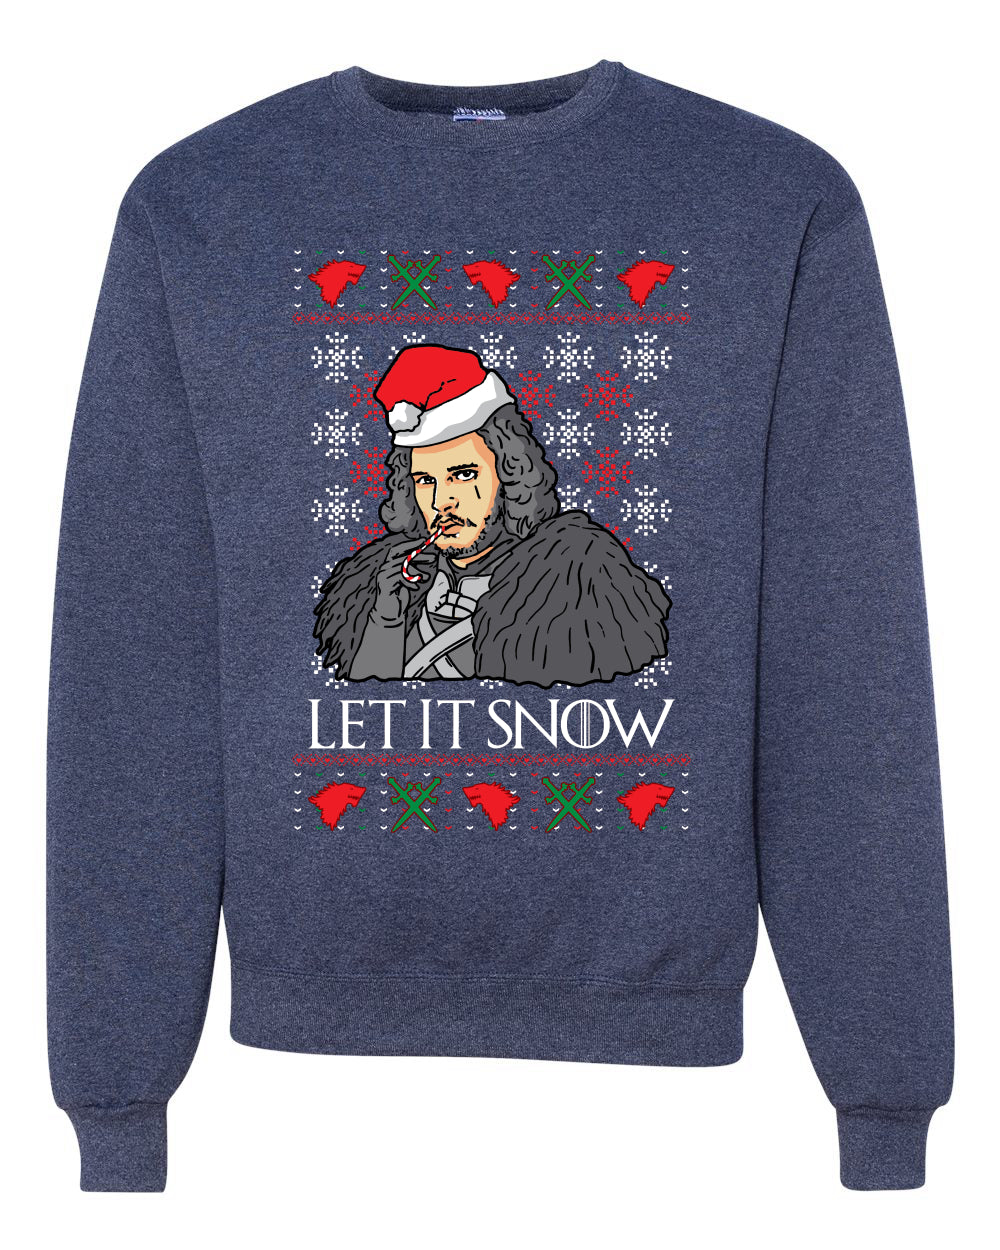 Let It Snow | Jon Snow Full Color GoT Christmas Unisex Crewneck Graphic Sweatshirt